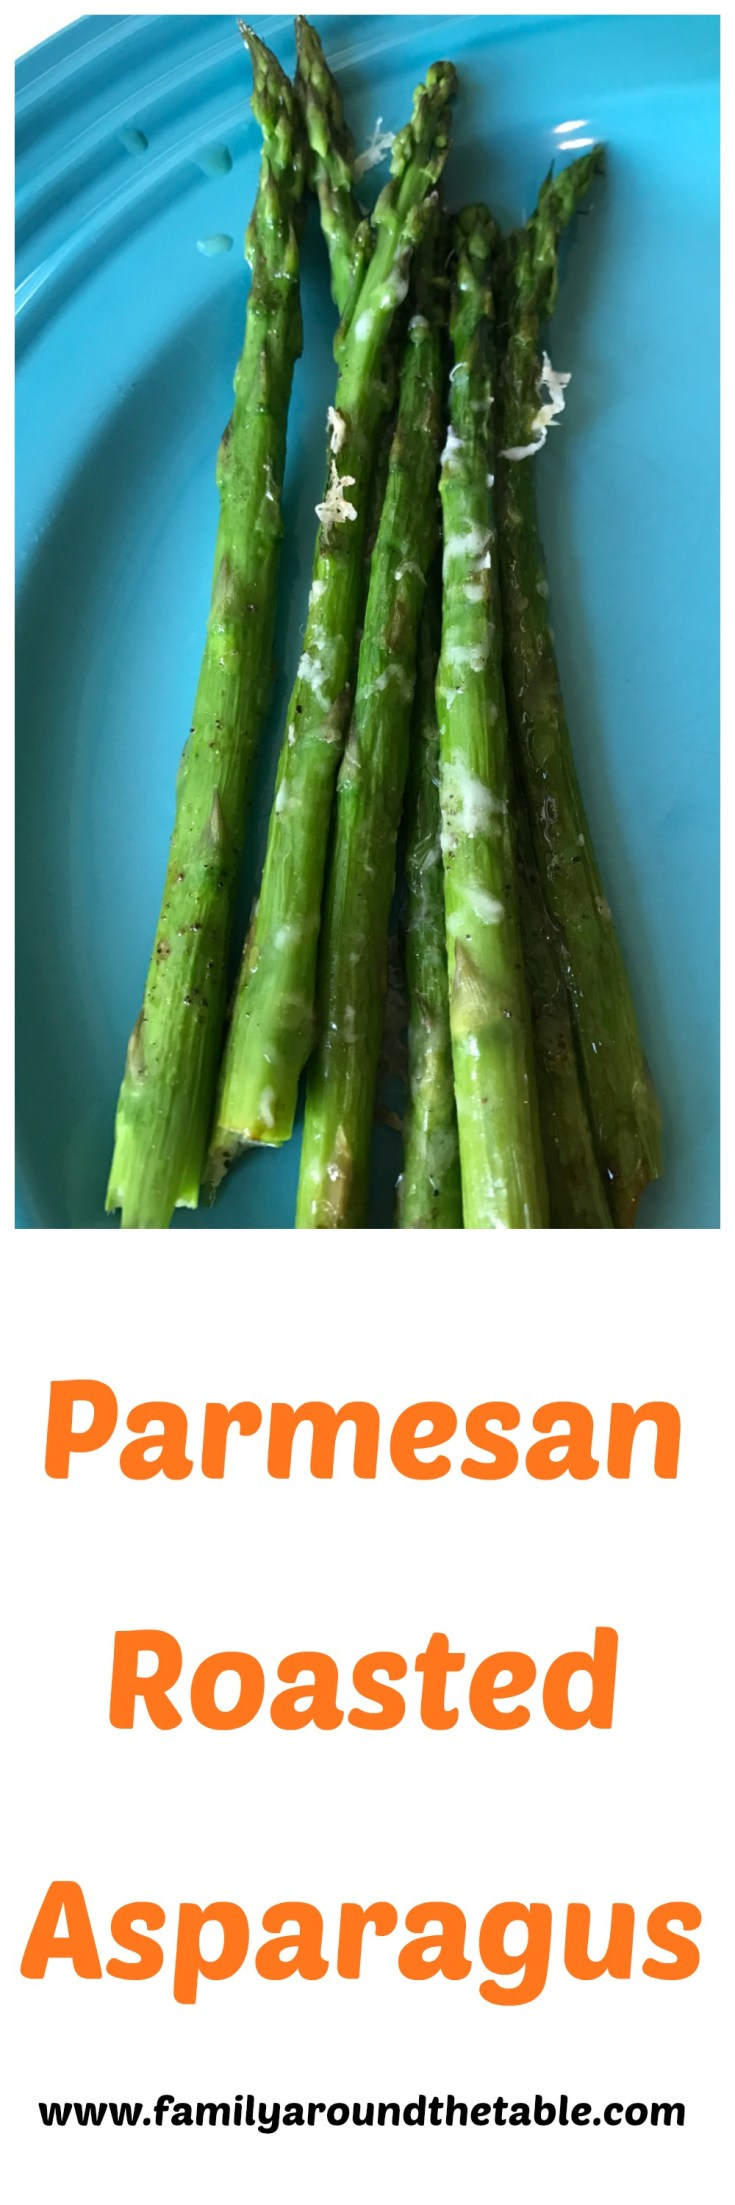 Parmesan Roasted Asparagus is a delicious side dish.